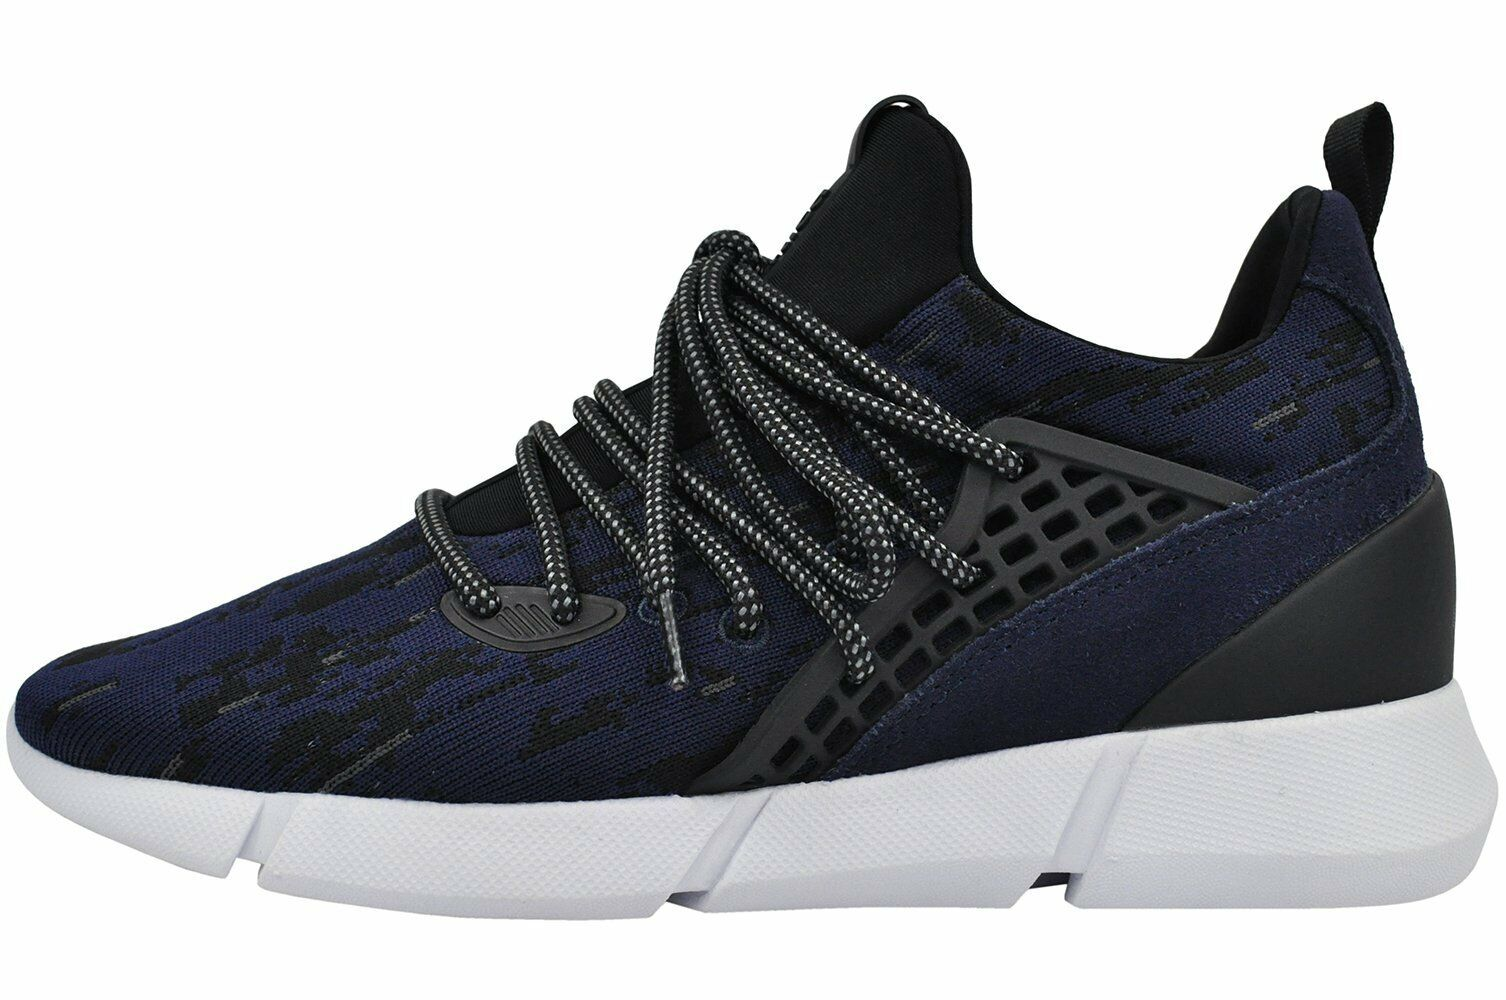 Cortica Mens Rapide Camo Knit Navy Trainers UK11 100 PUSH